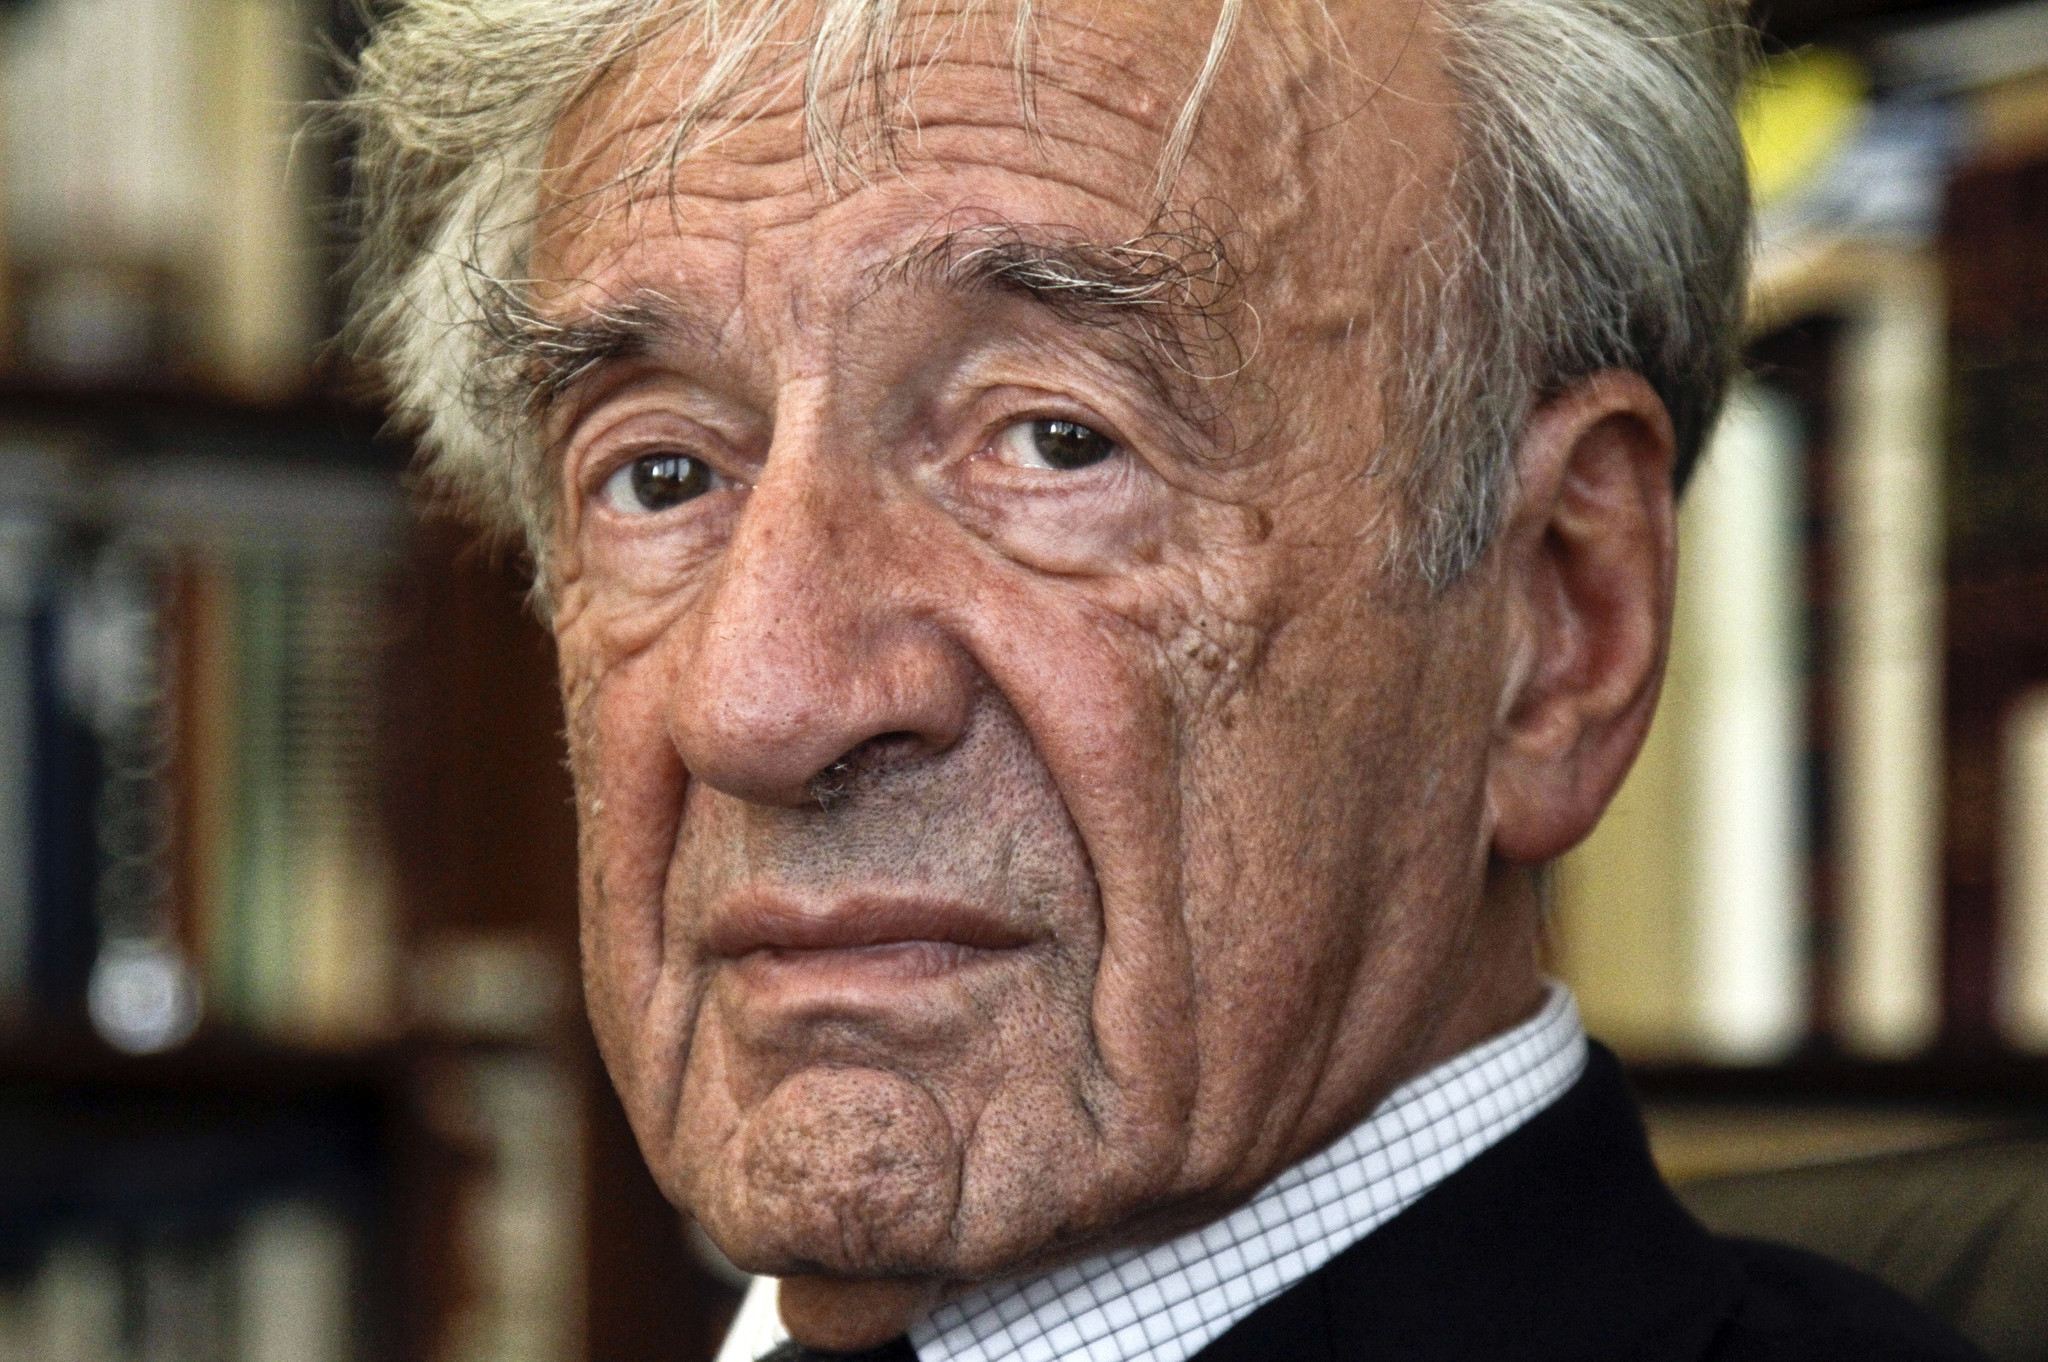 Romanian police investigating anti-Semitic graffiti on Elie Wiesel's house